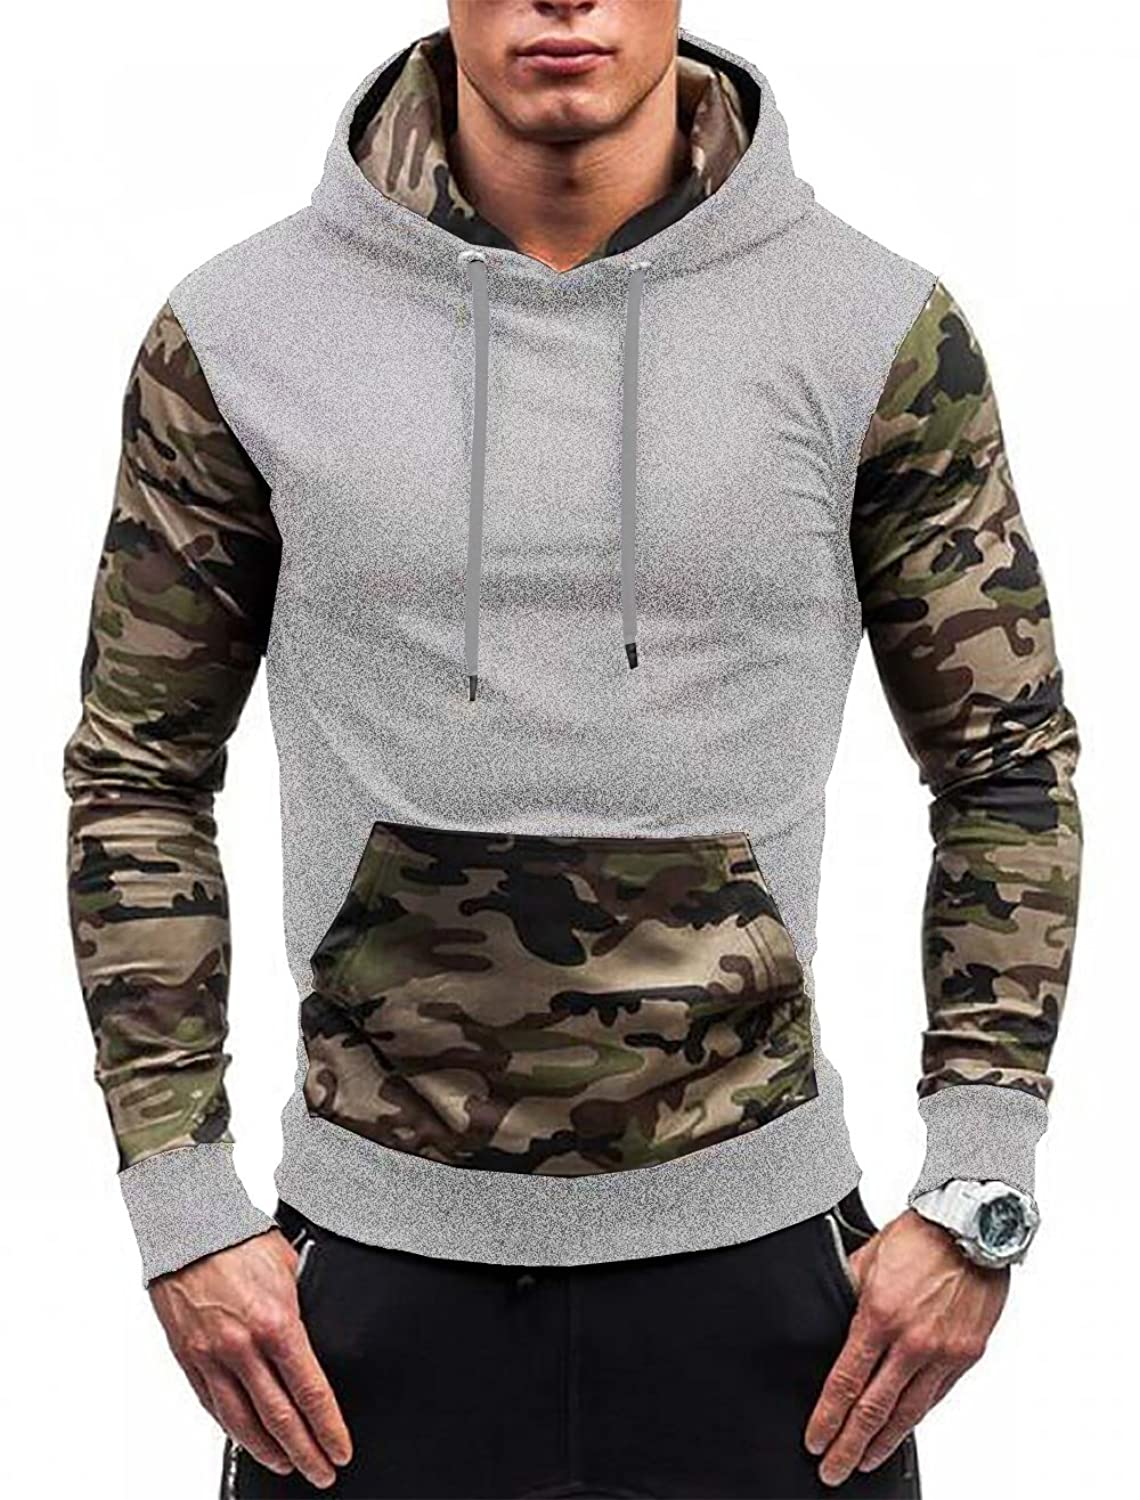 0a2077fc1b8b5 High quality camo hoodie,keep you feel warm,soft and comfortable from  mildly cold to very cold conditions. Functional design with a zipper pocket  on the ...